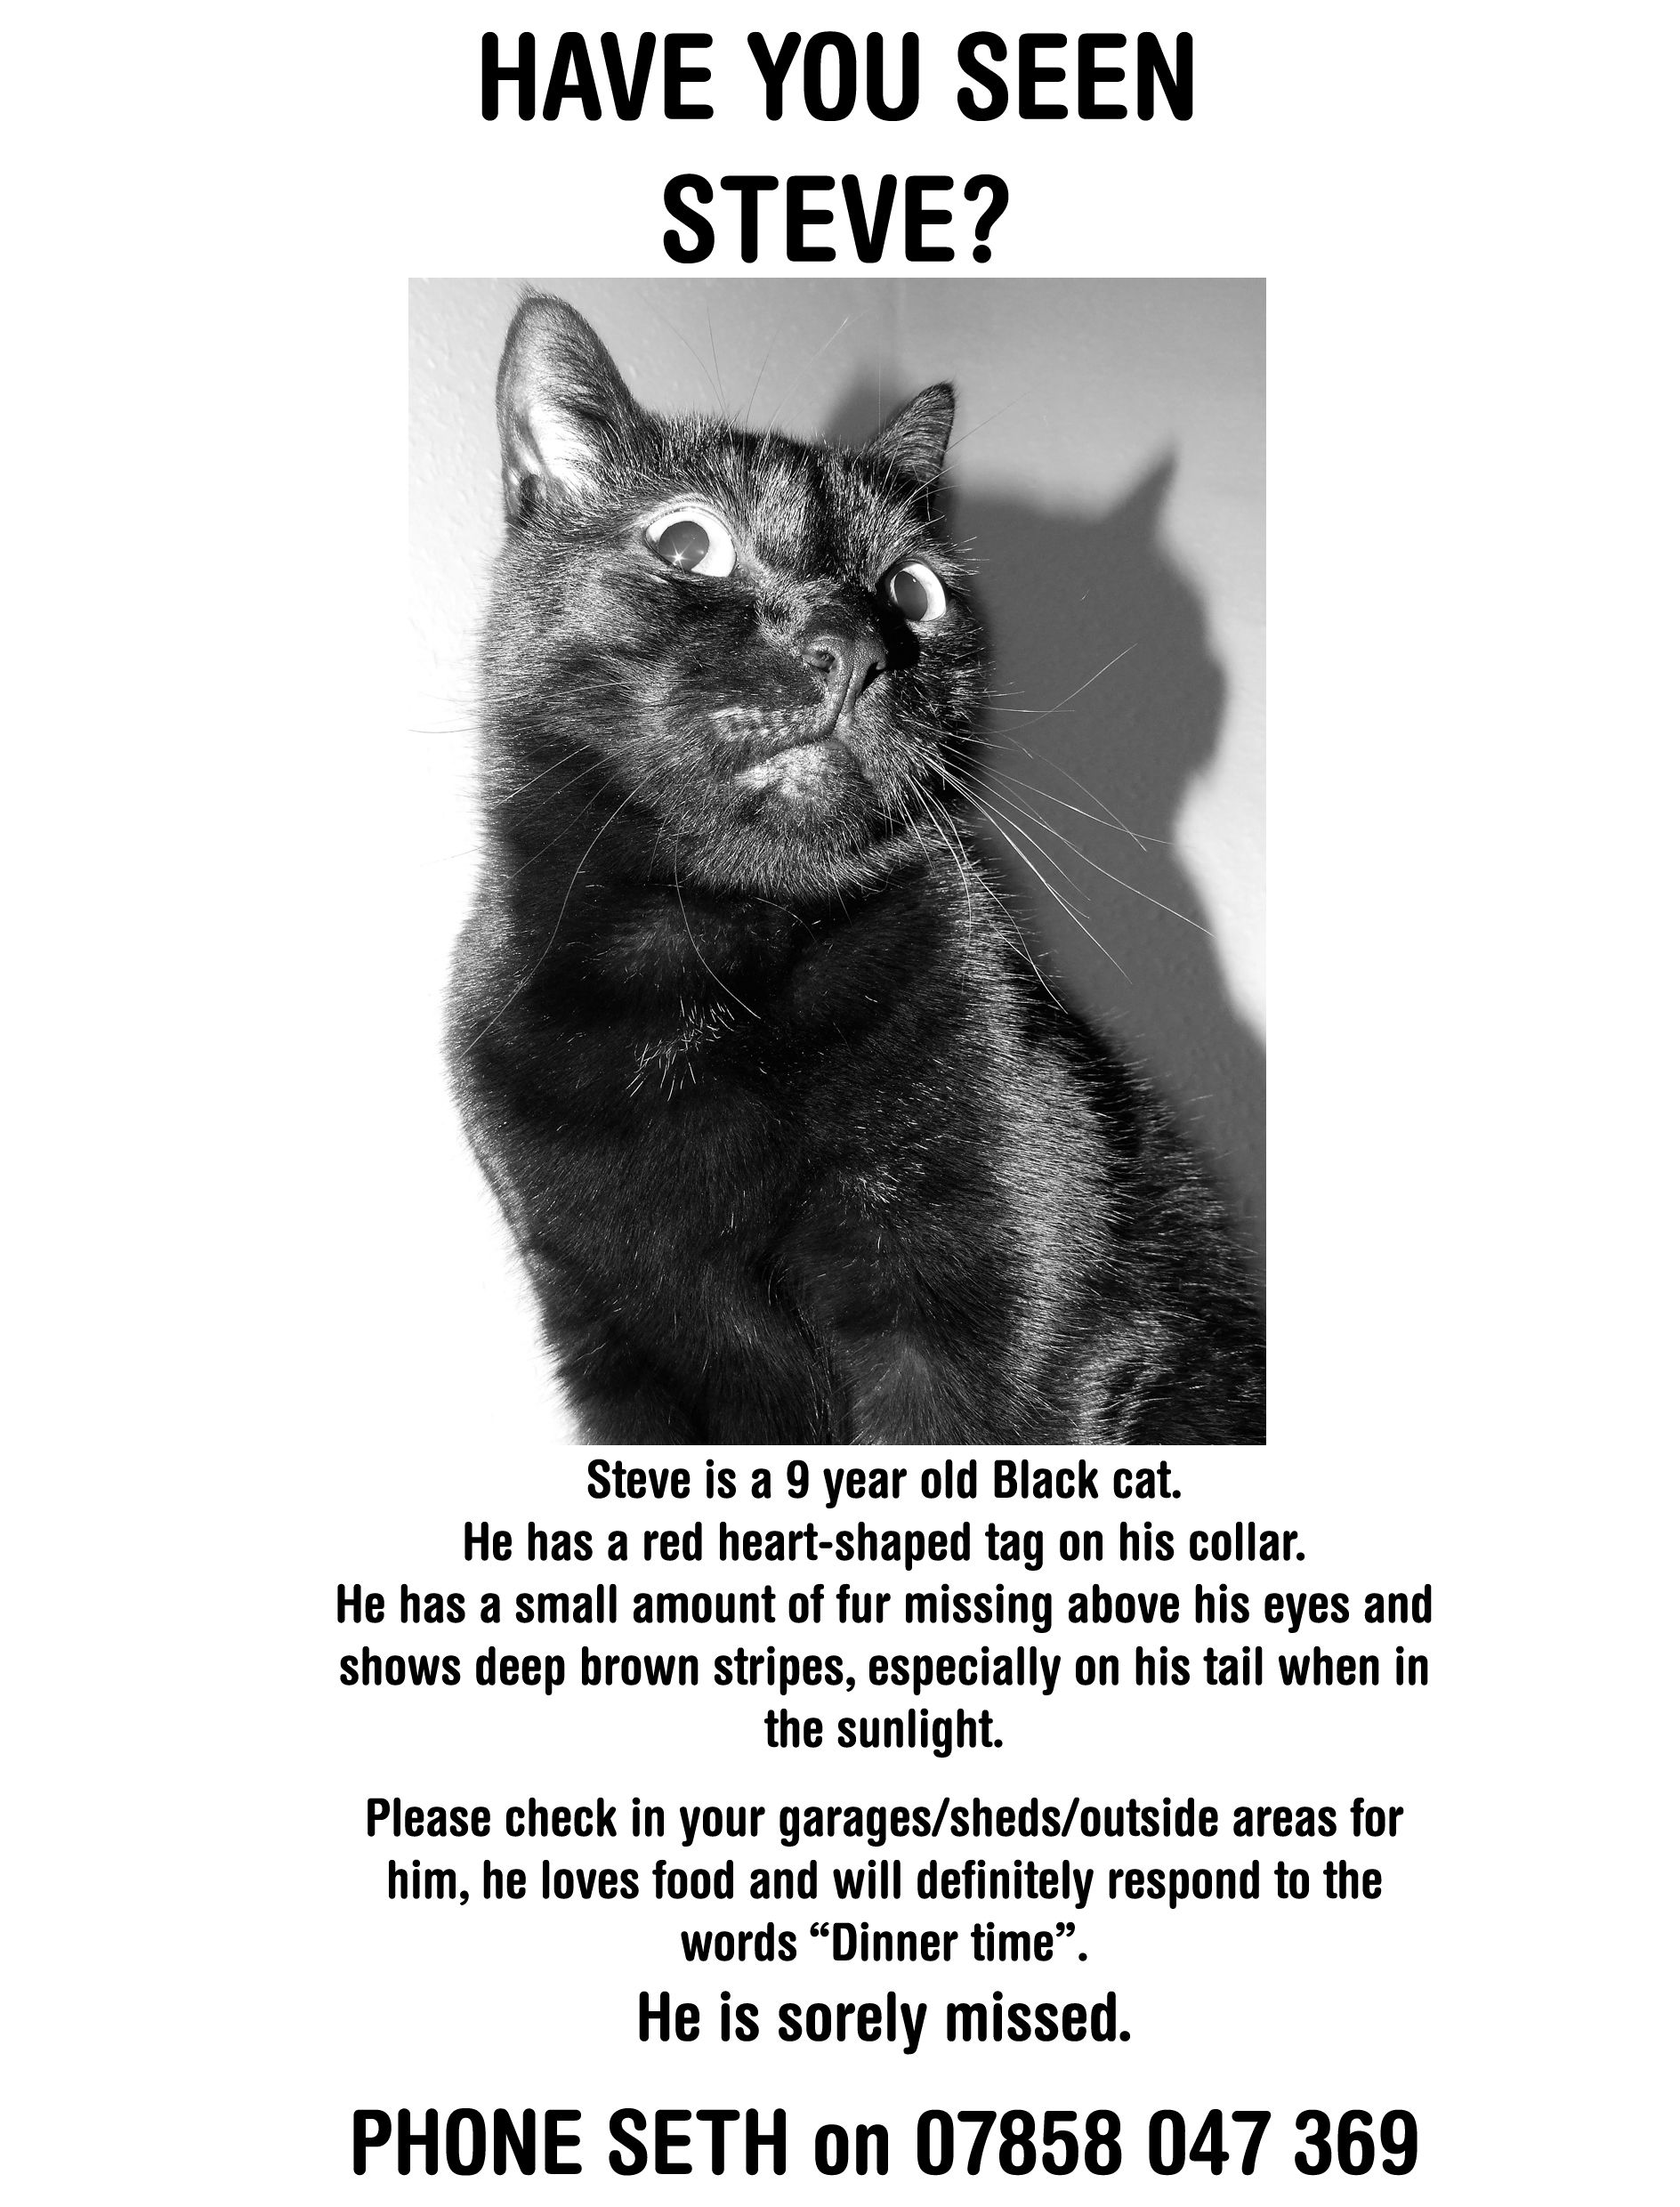 lost cat images Google Search Cats, His eyes, 9 year olds